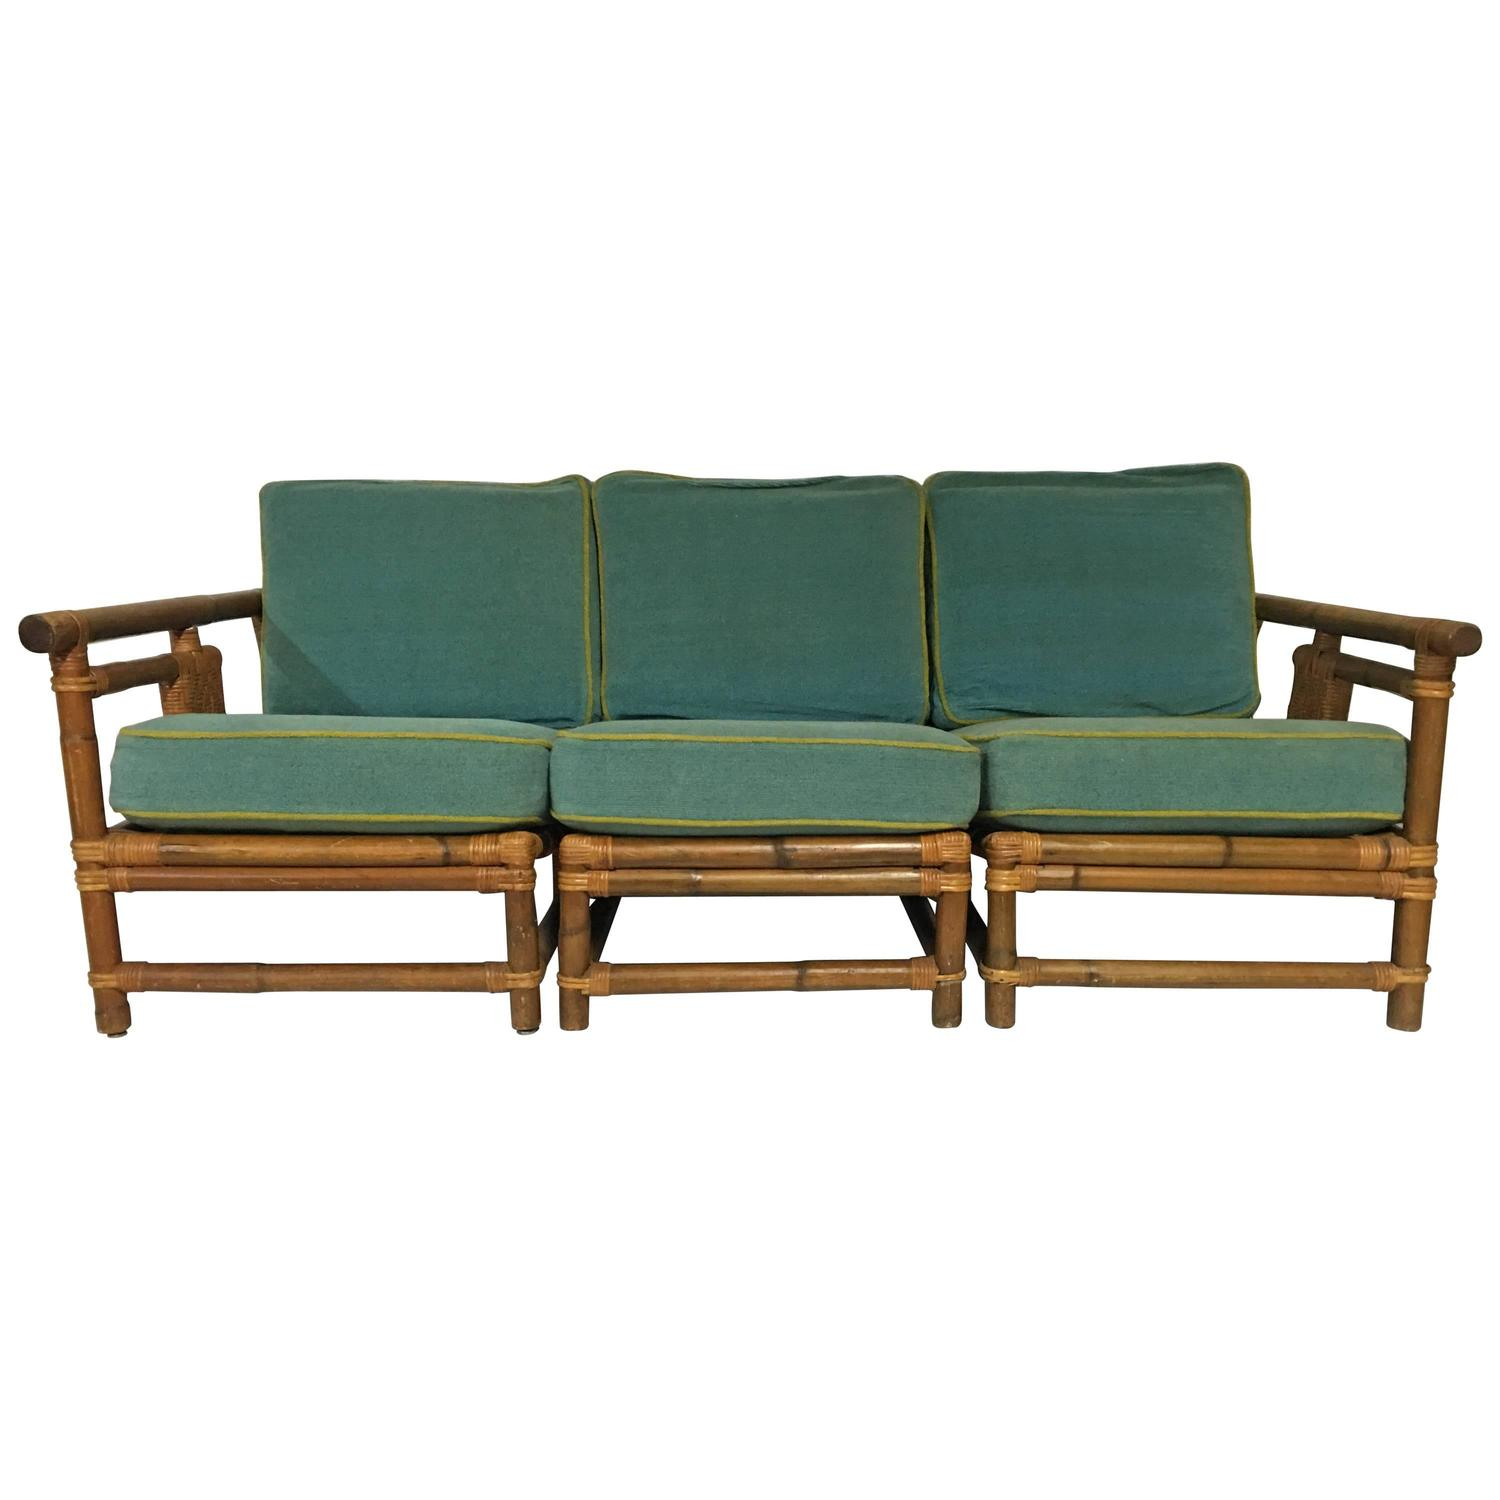 1940s Calif Asia Rattan and Wicker Three Piece Sofa and Cushions